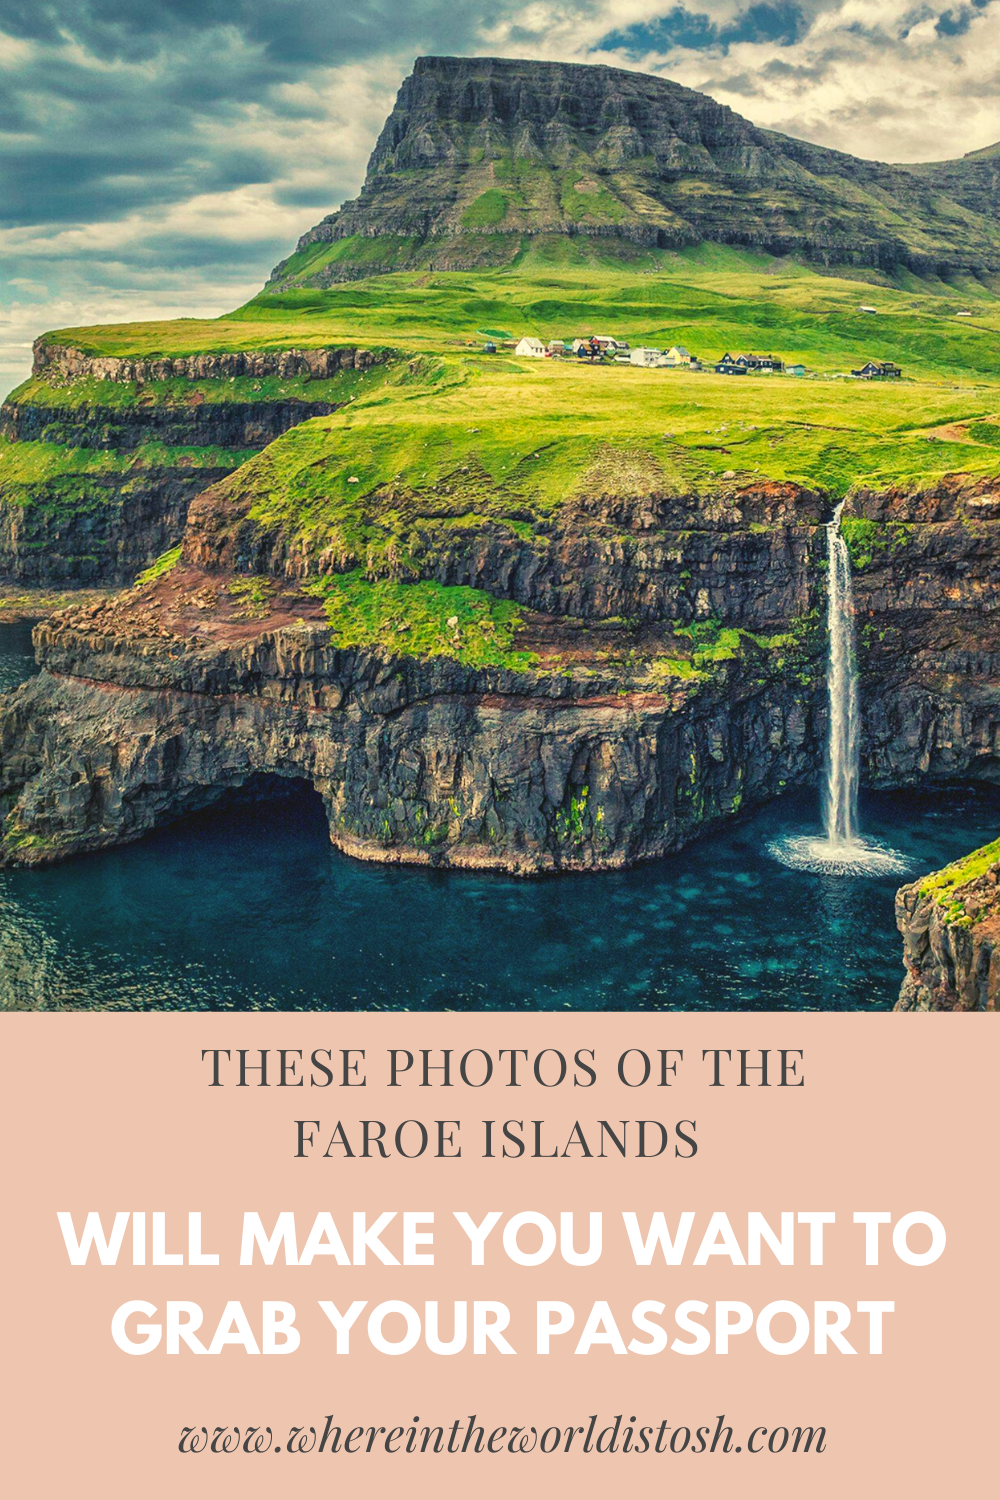 These Photos Of The Faroe Islands Will Make You Want To Grab Your Passport